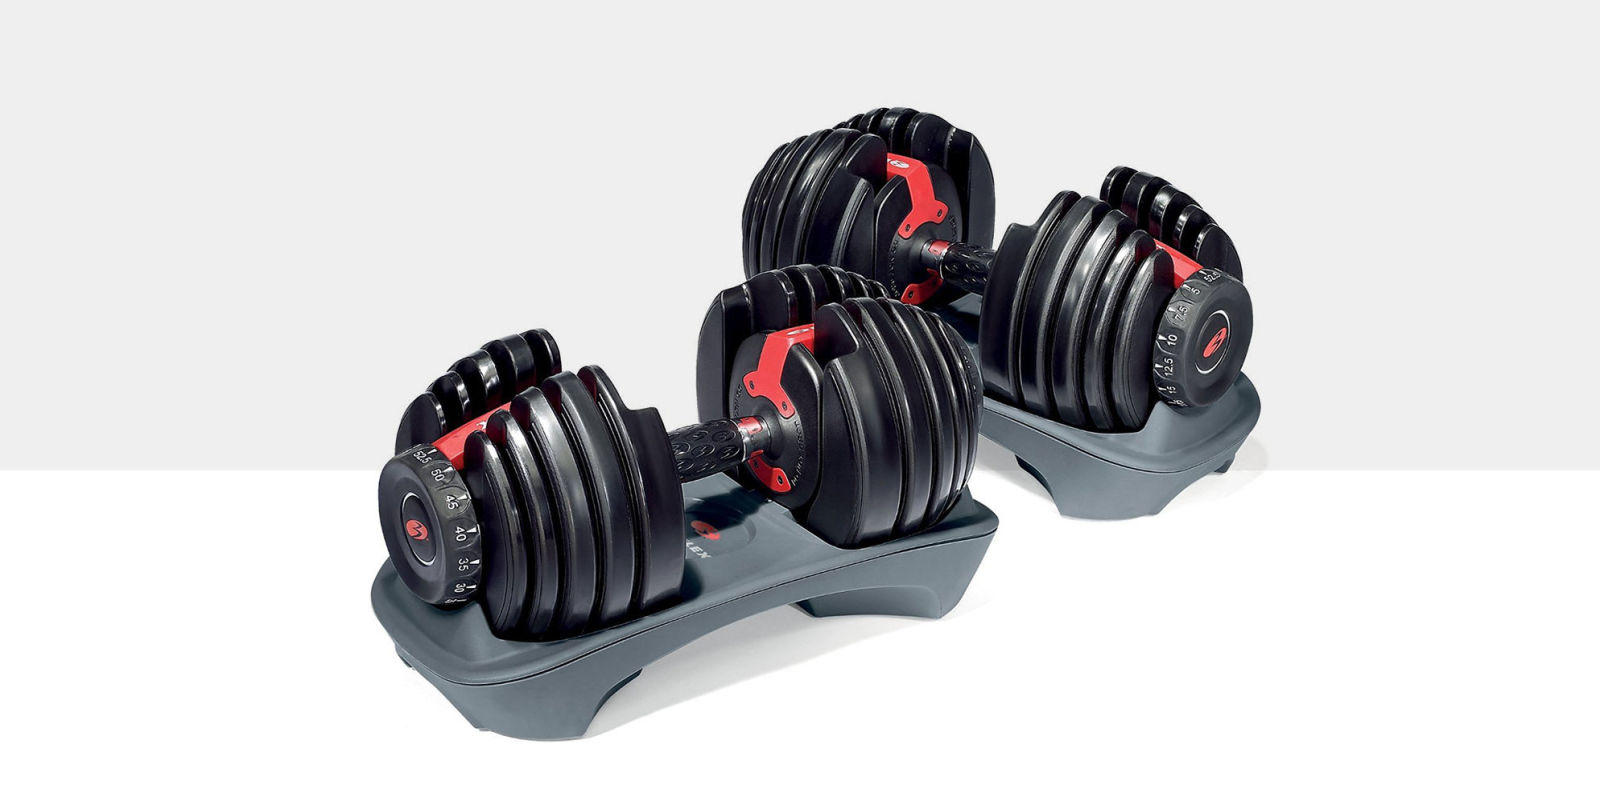 13 Best Adjustable Dumbbells And Weights For 2018